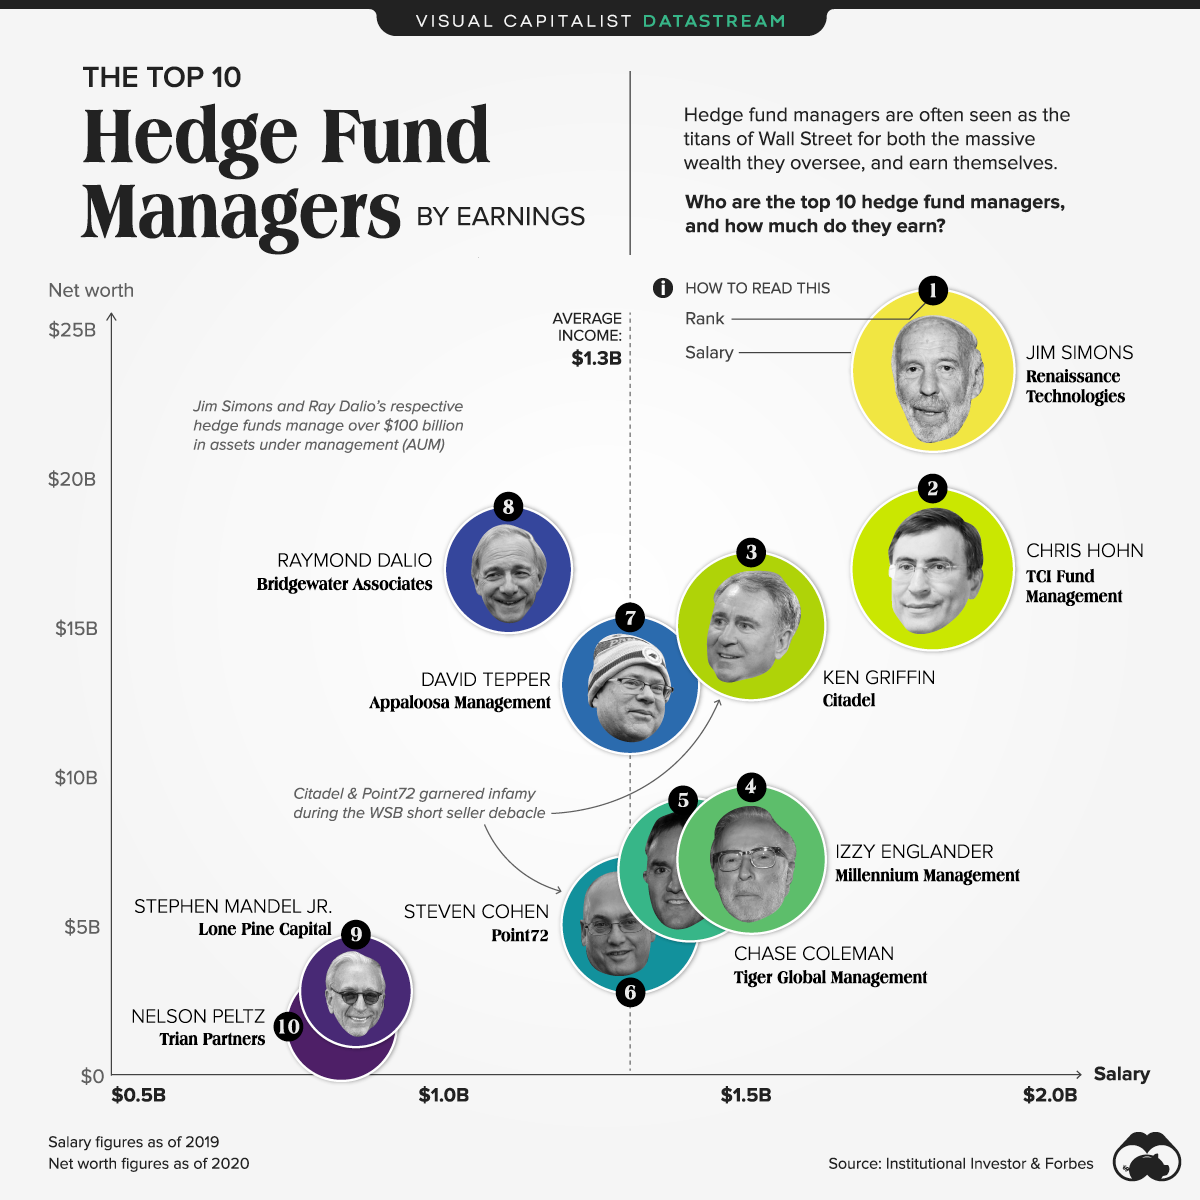 hedge fund managers by earnings